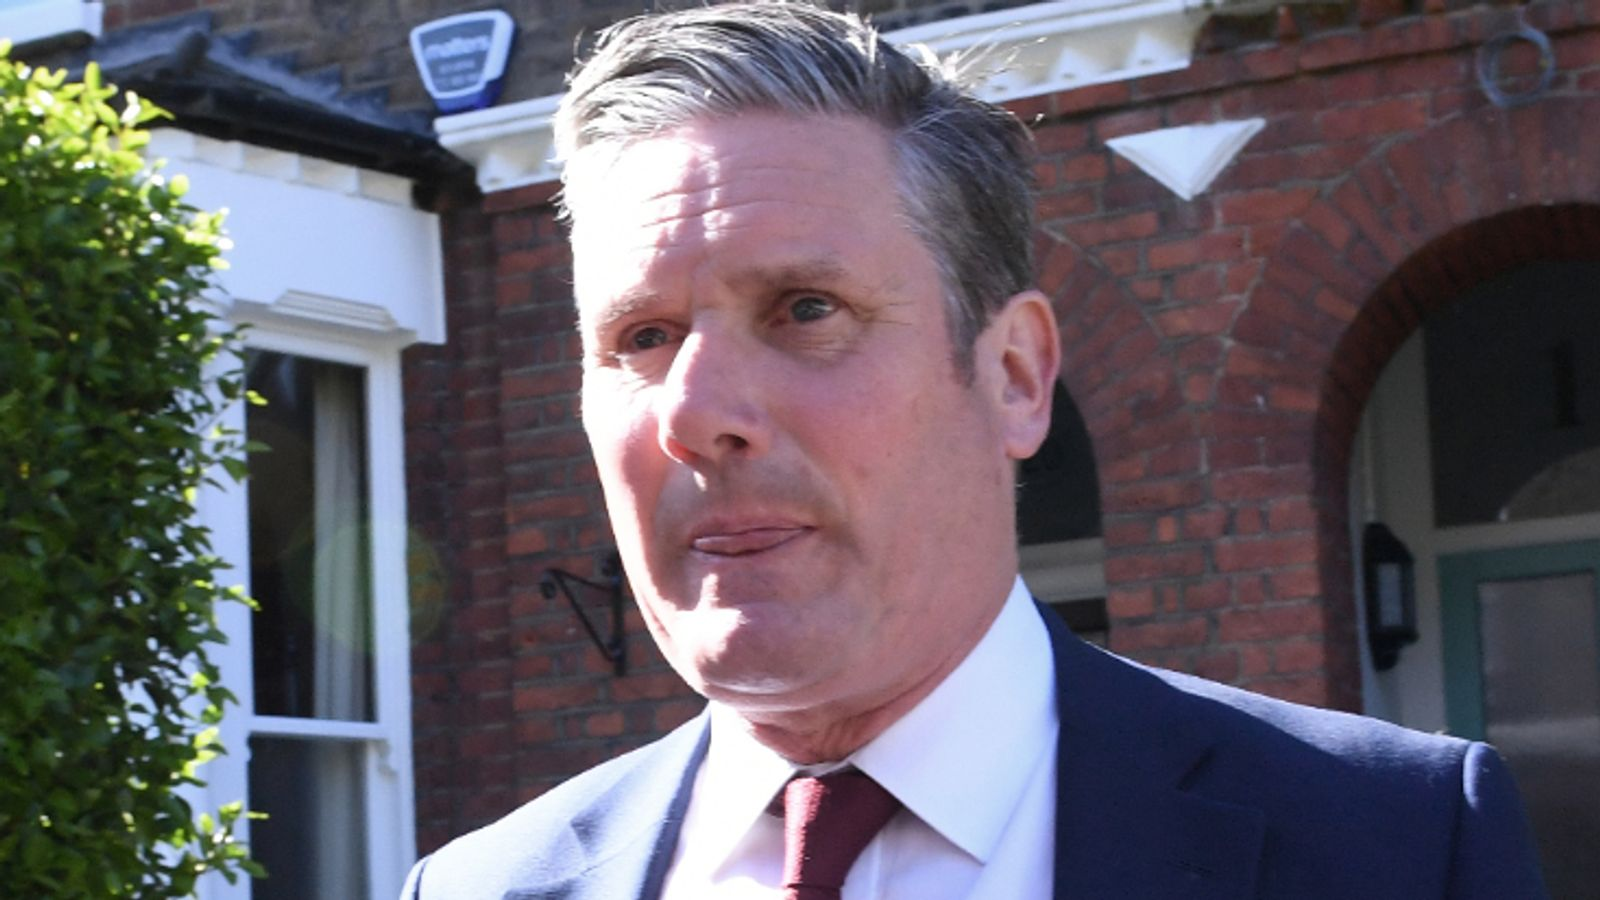 Labour could 'go under' with Starmer at the helm, says outgoing Unite boss